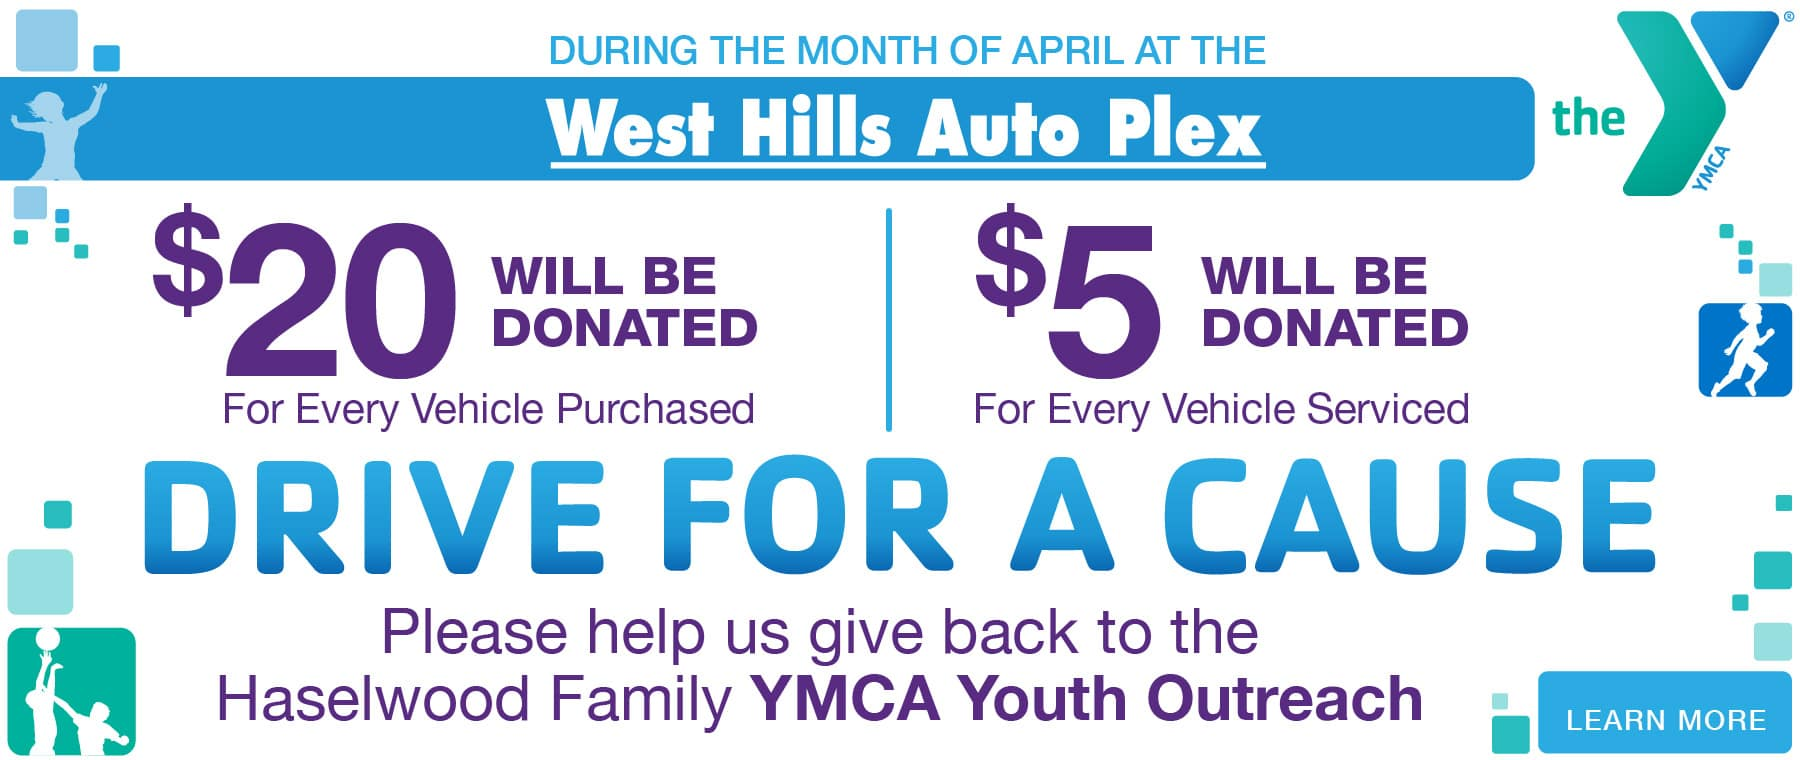 YMCA Drive For A Cause For every vehicle purchased in the month of April, Haselwood Family YMCA will receive a $20 donation. For every service repair order in the month of April, we will donate $5. *